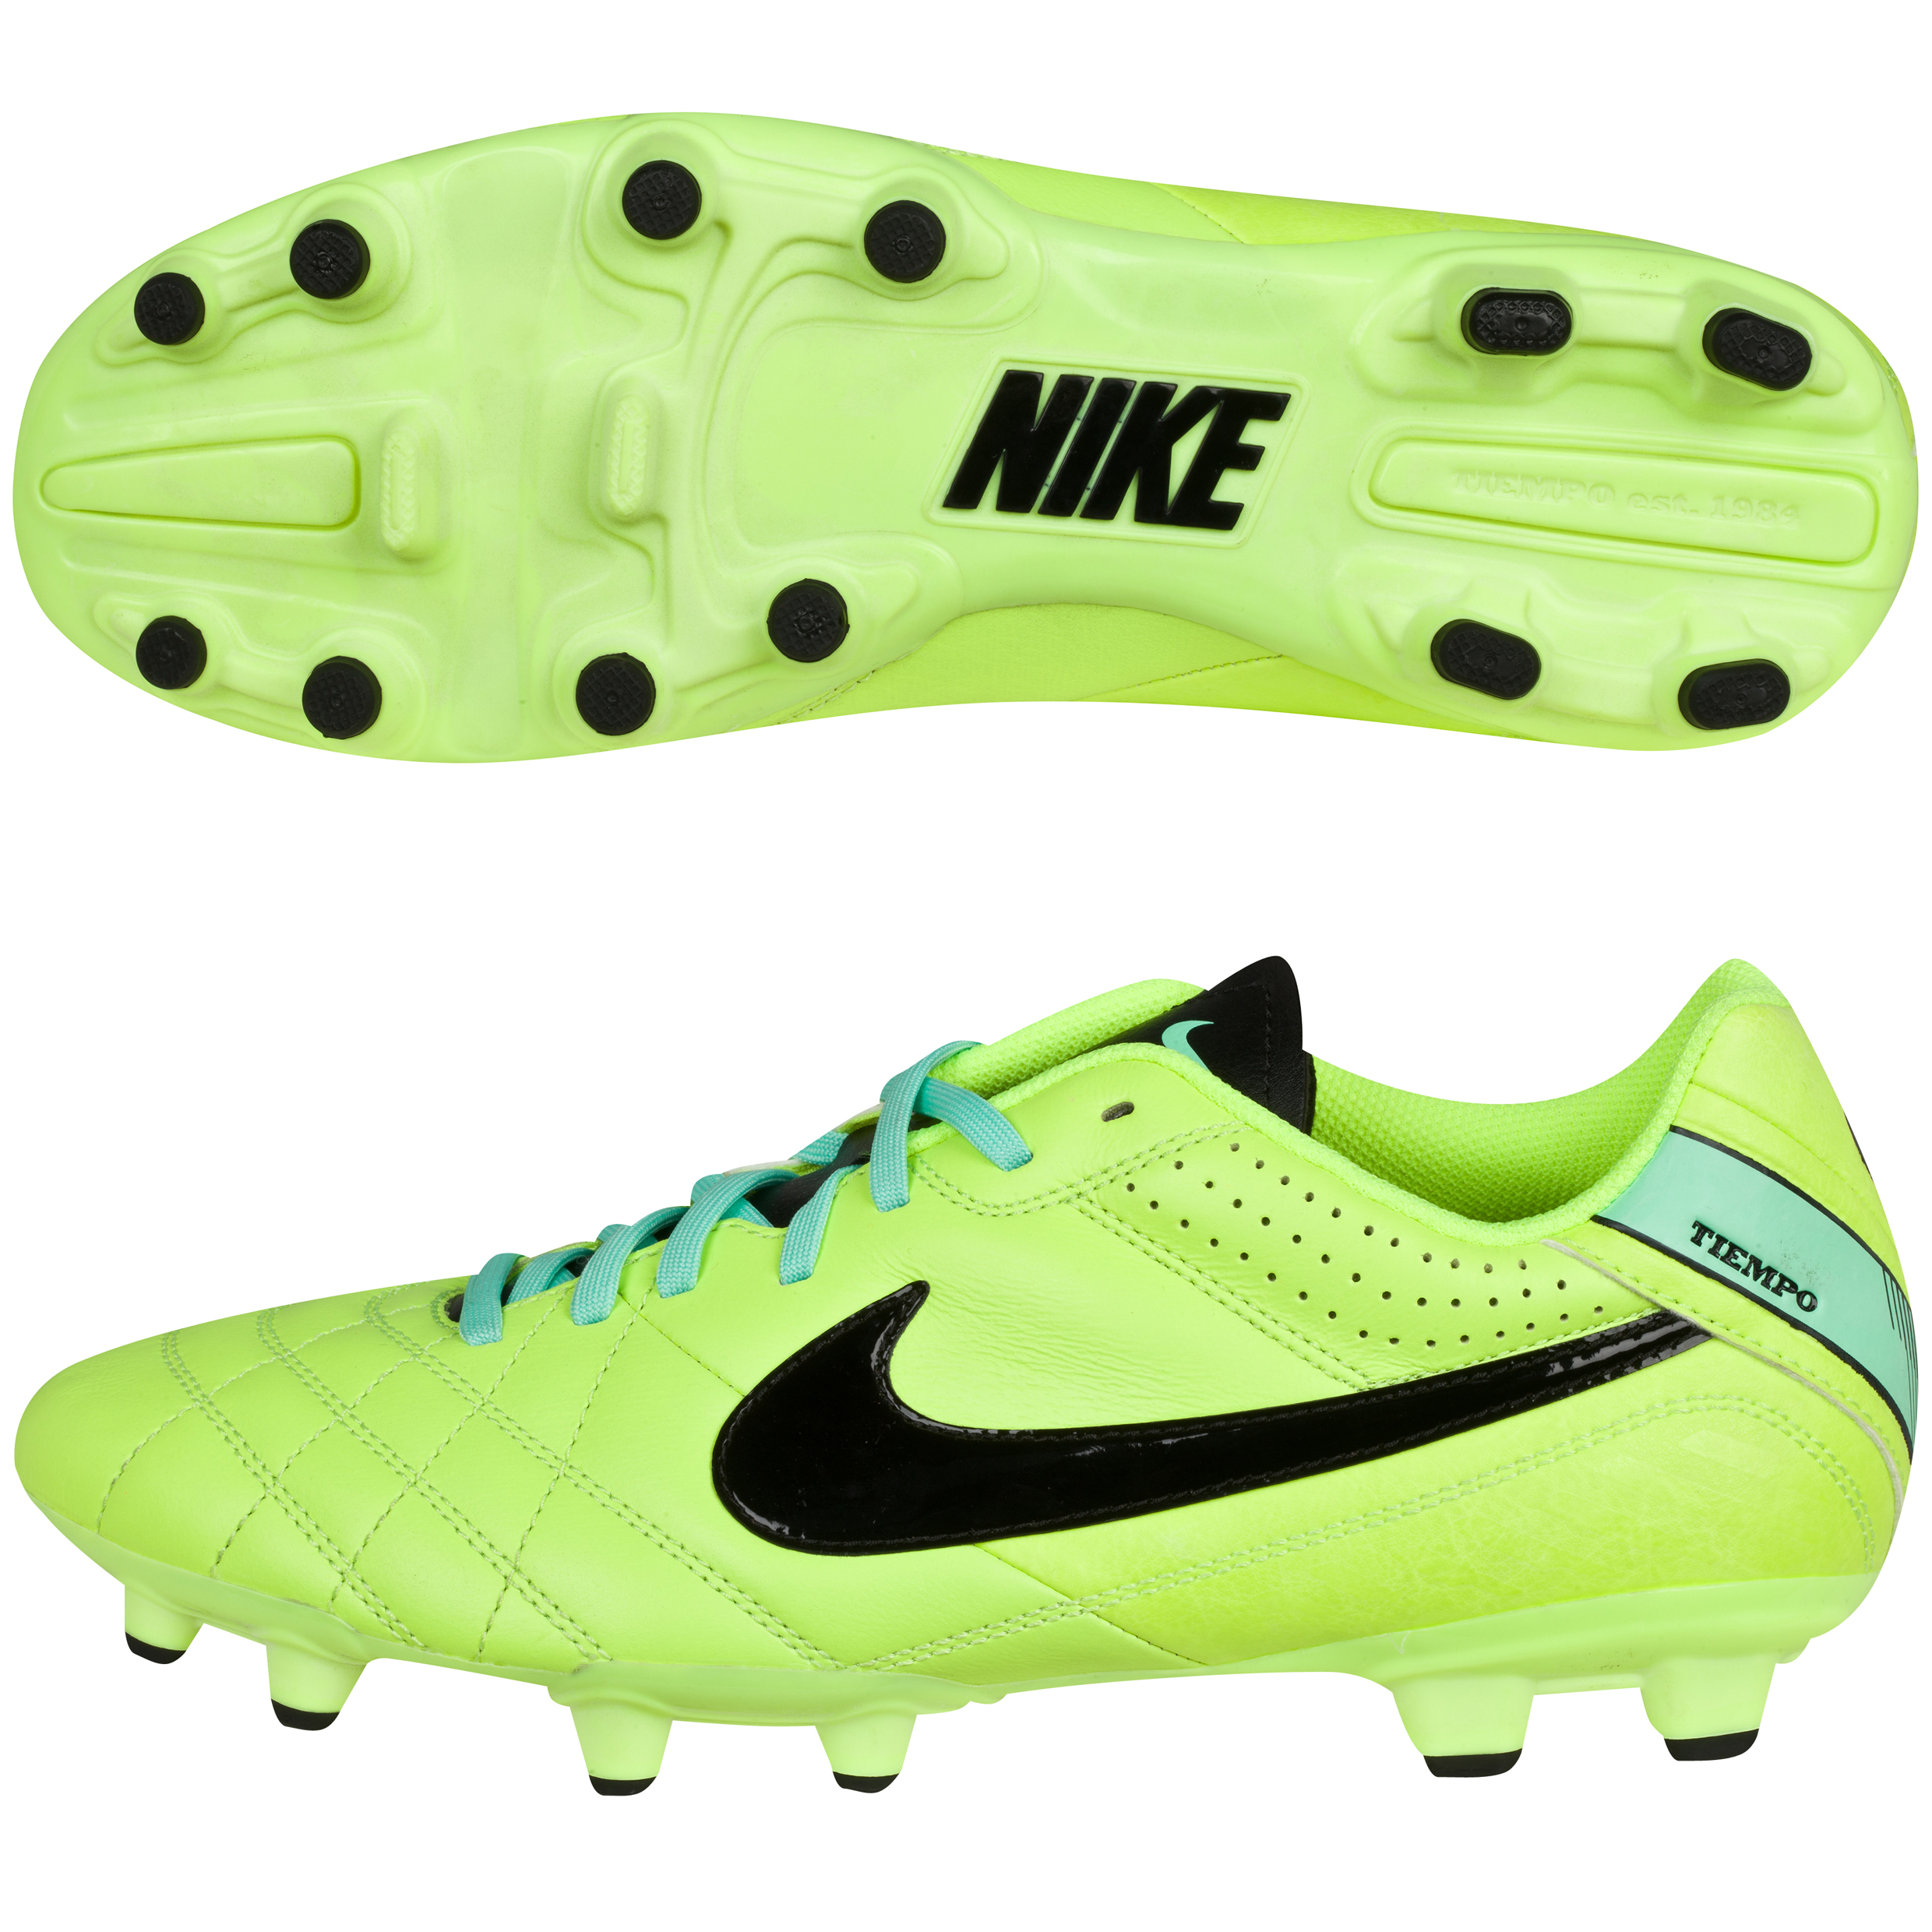 Nike Tiempo Natural Iv Firm Ground Football Boots-Volt/Black/Green Glow Lt Green